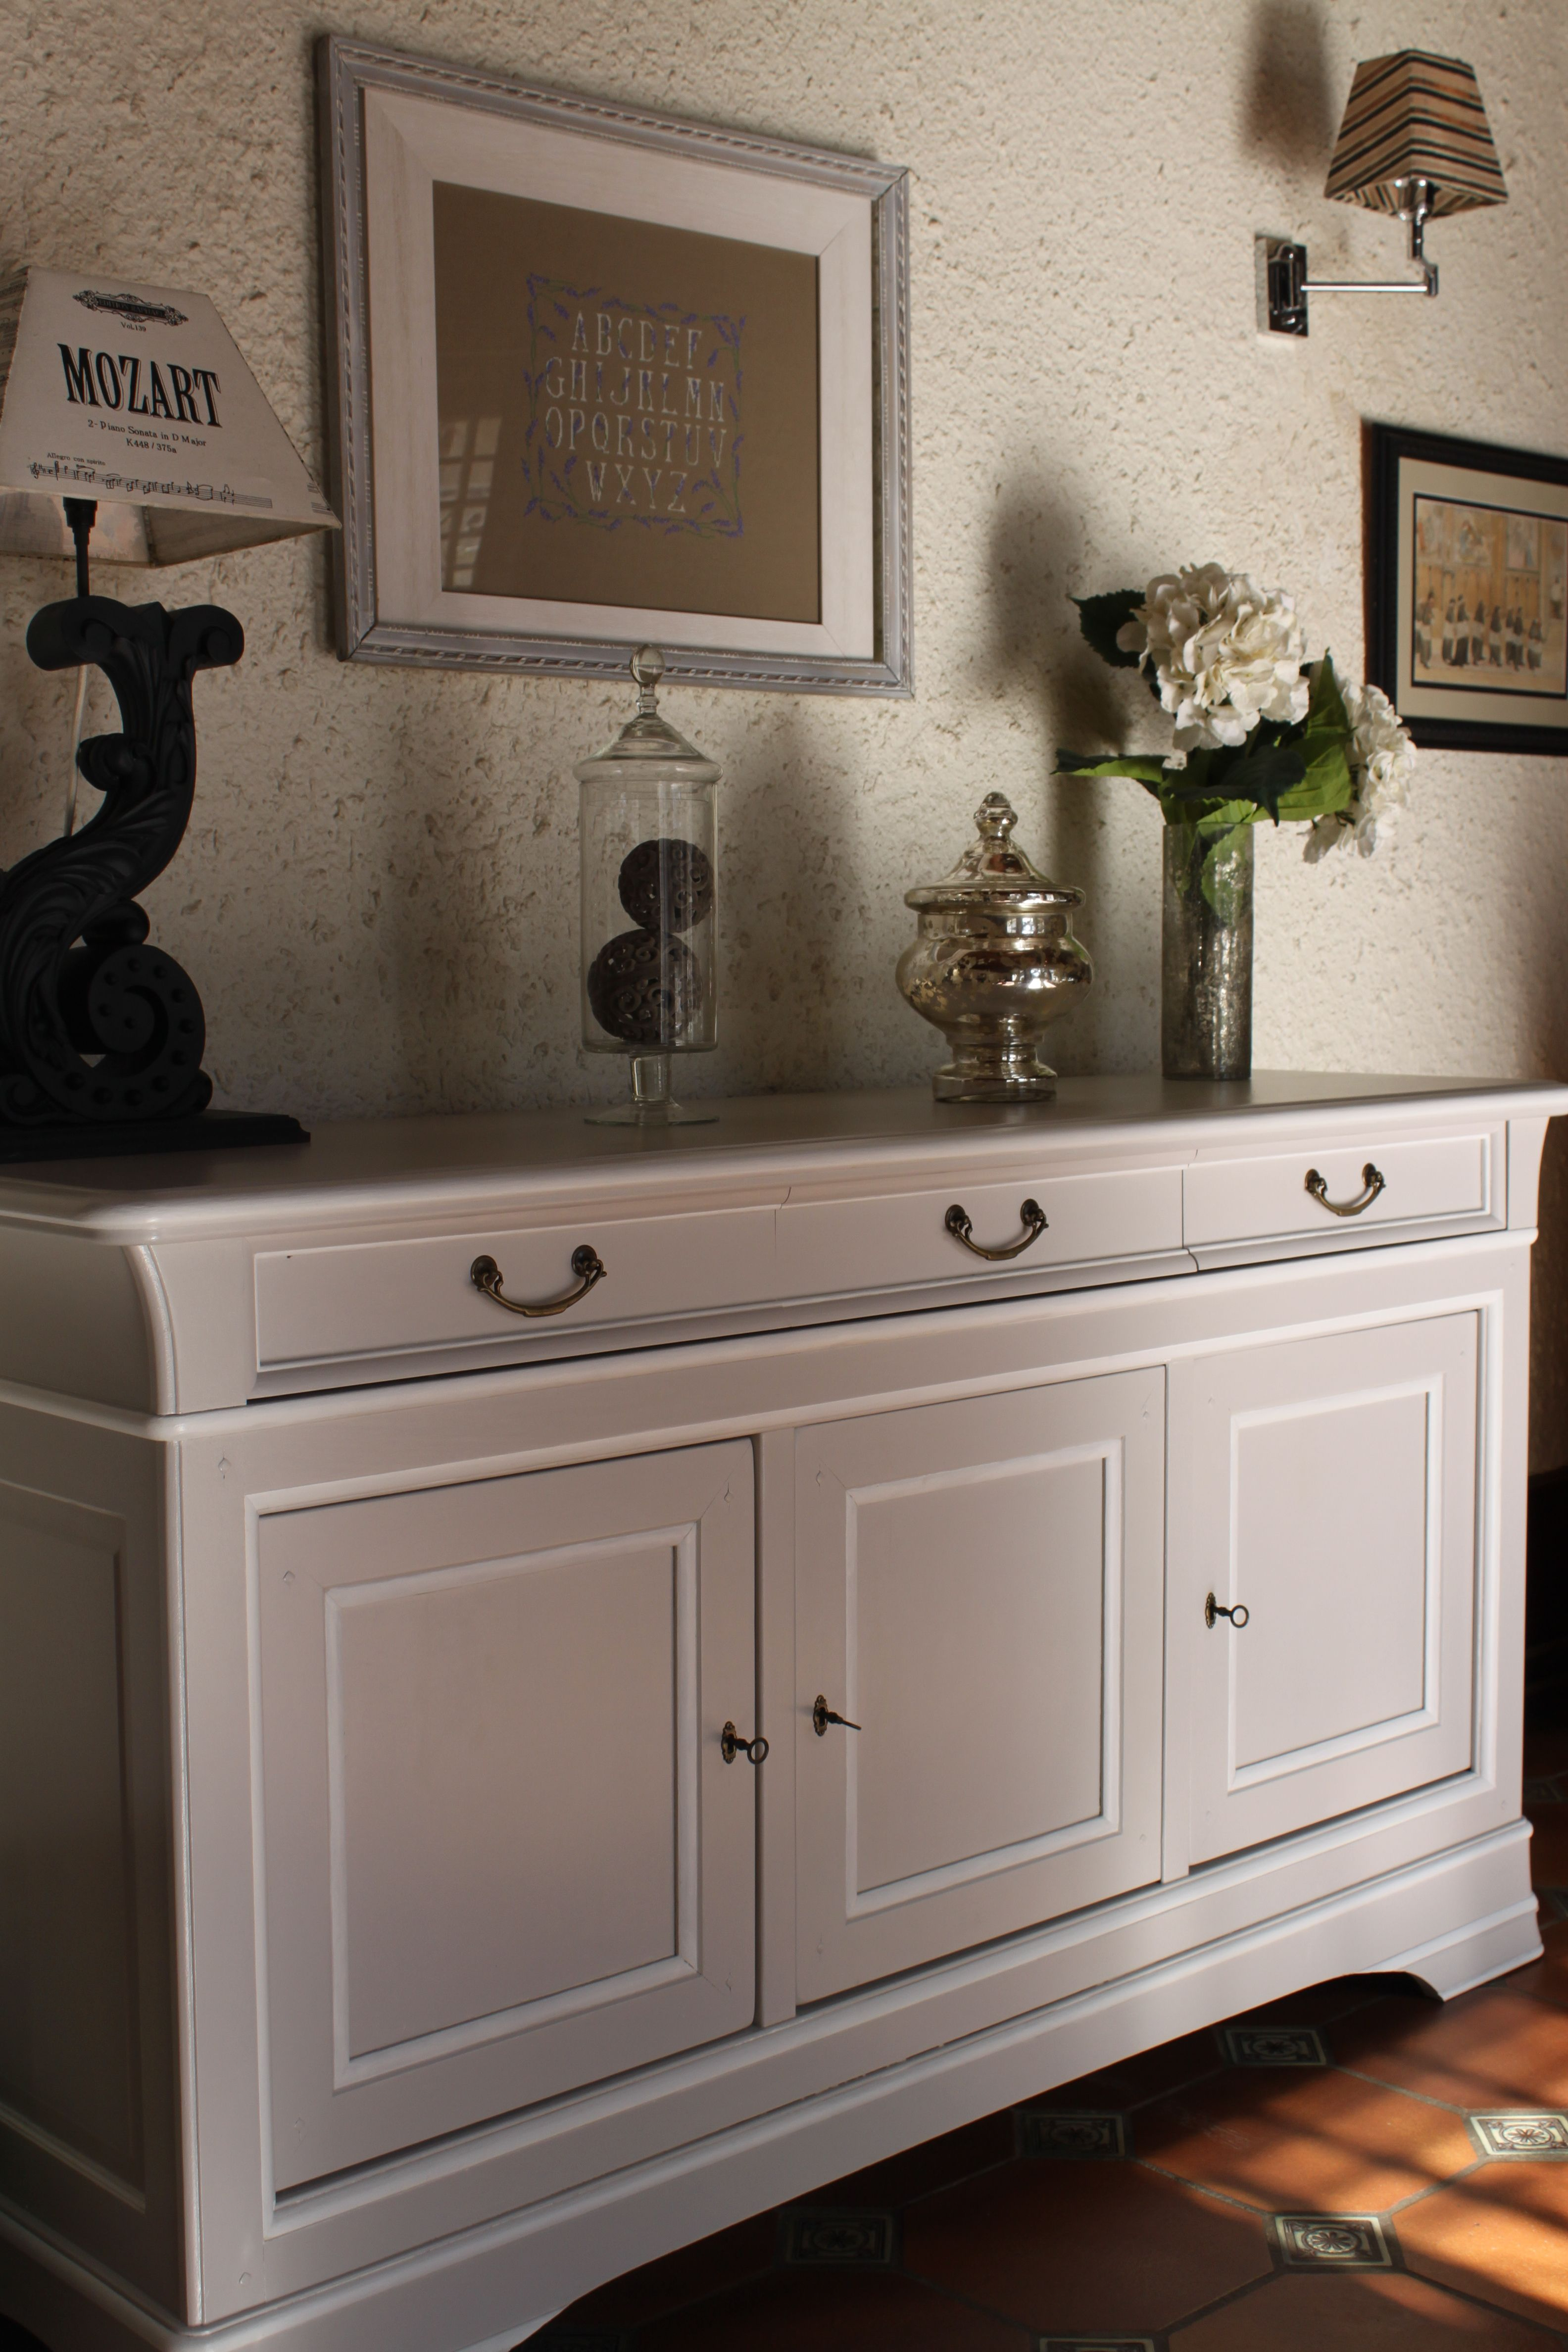 nell co buffet louis philippe en merisier patin galet nell and co patines pinterest. Black Bedroom Furniture Sets. Home Design Ideas